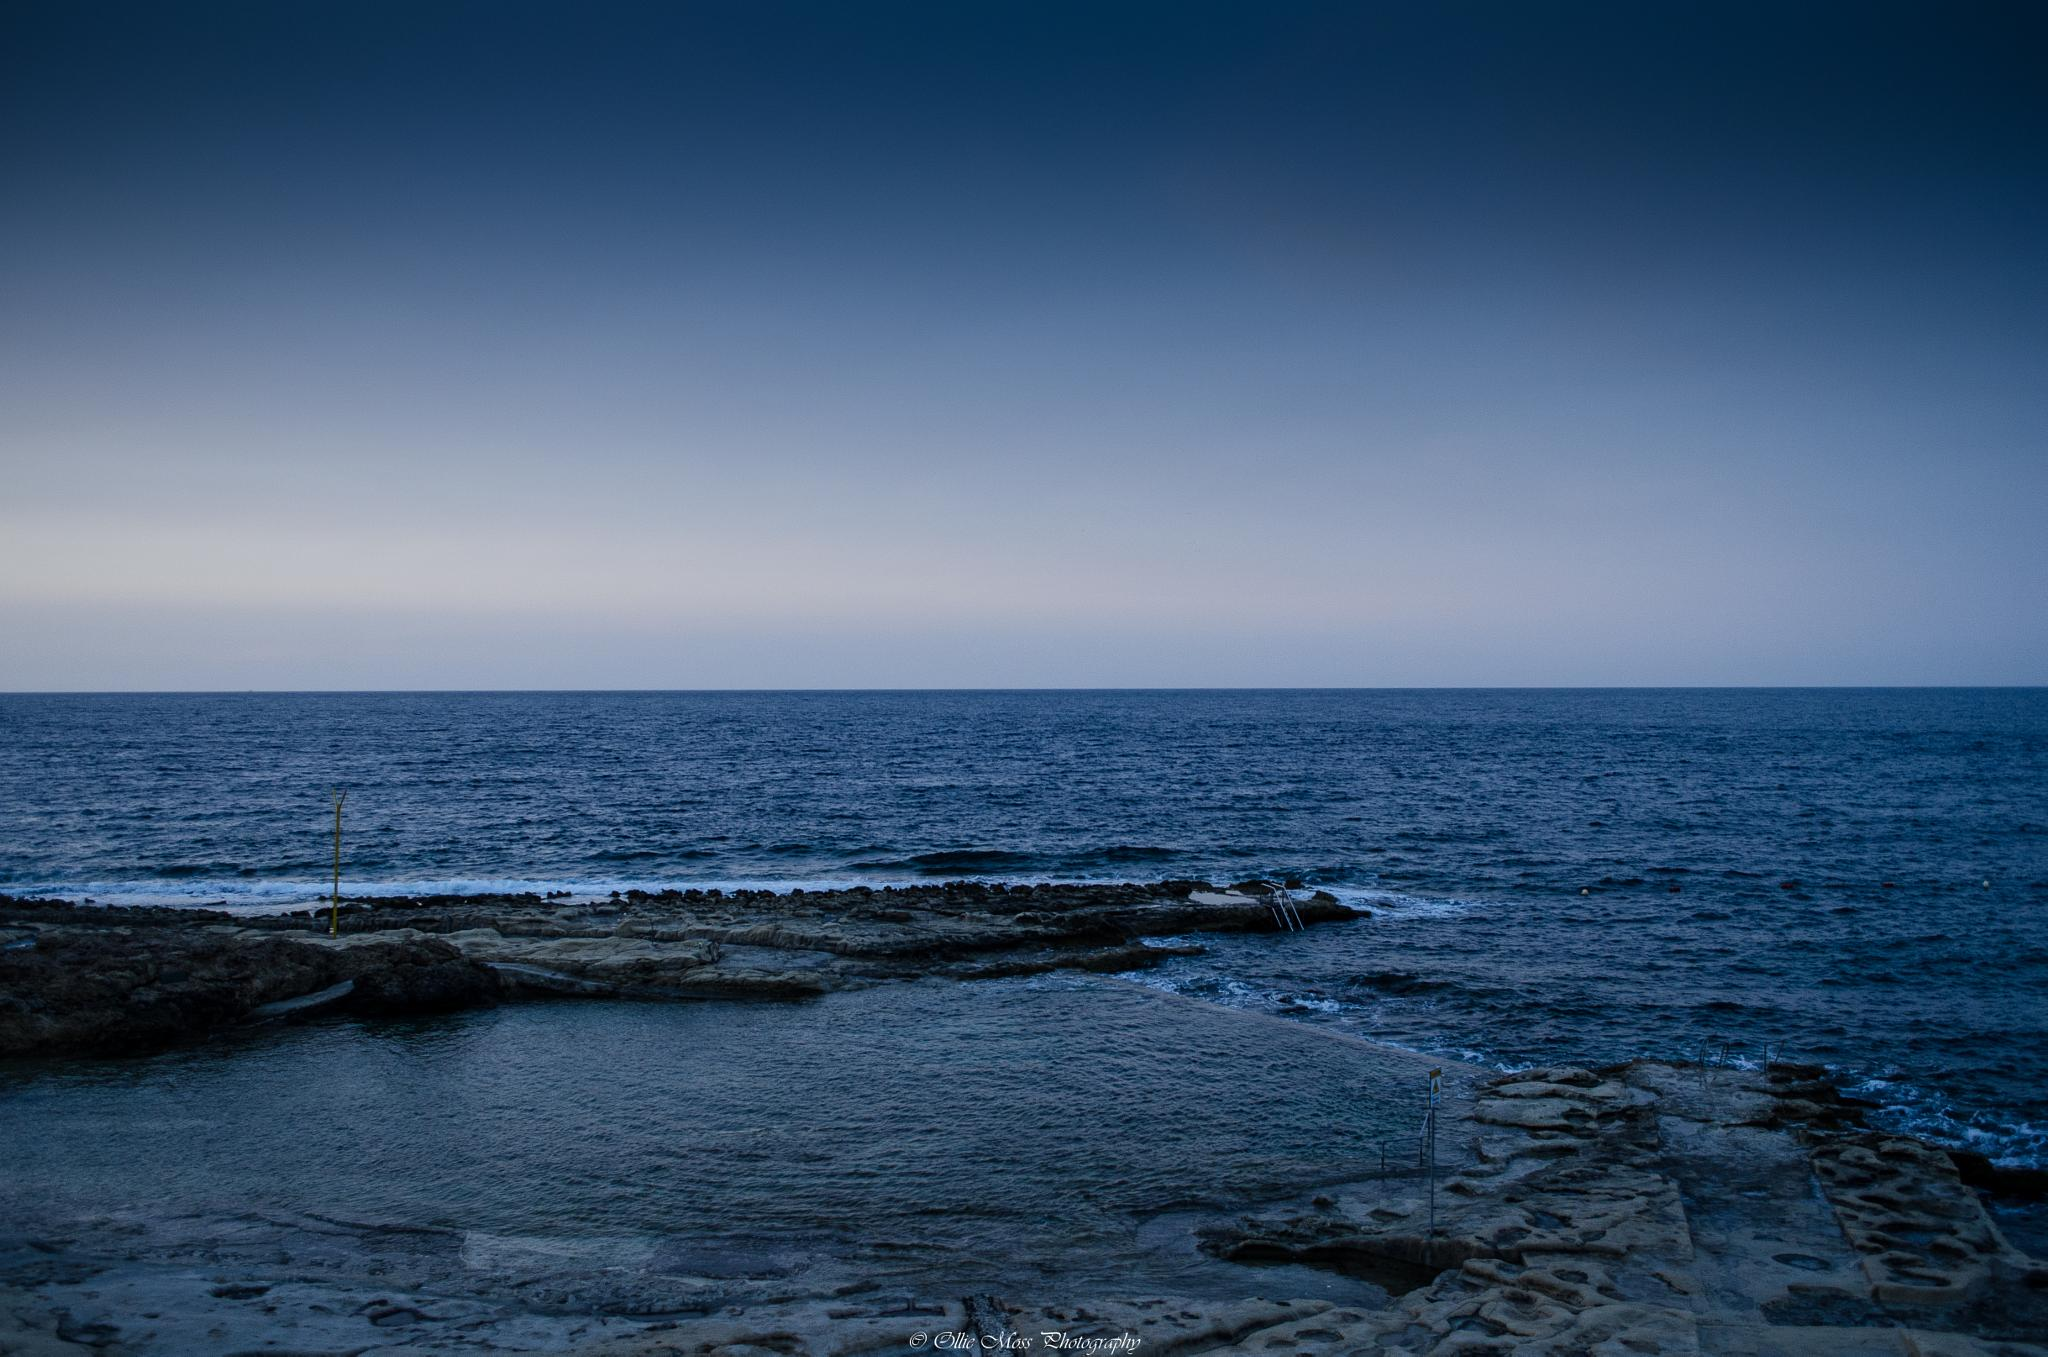 Over looking the sea in malta by Ollie Moss Photography